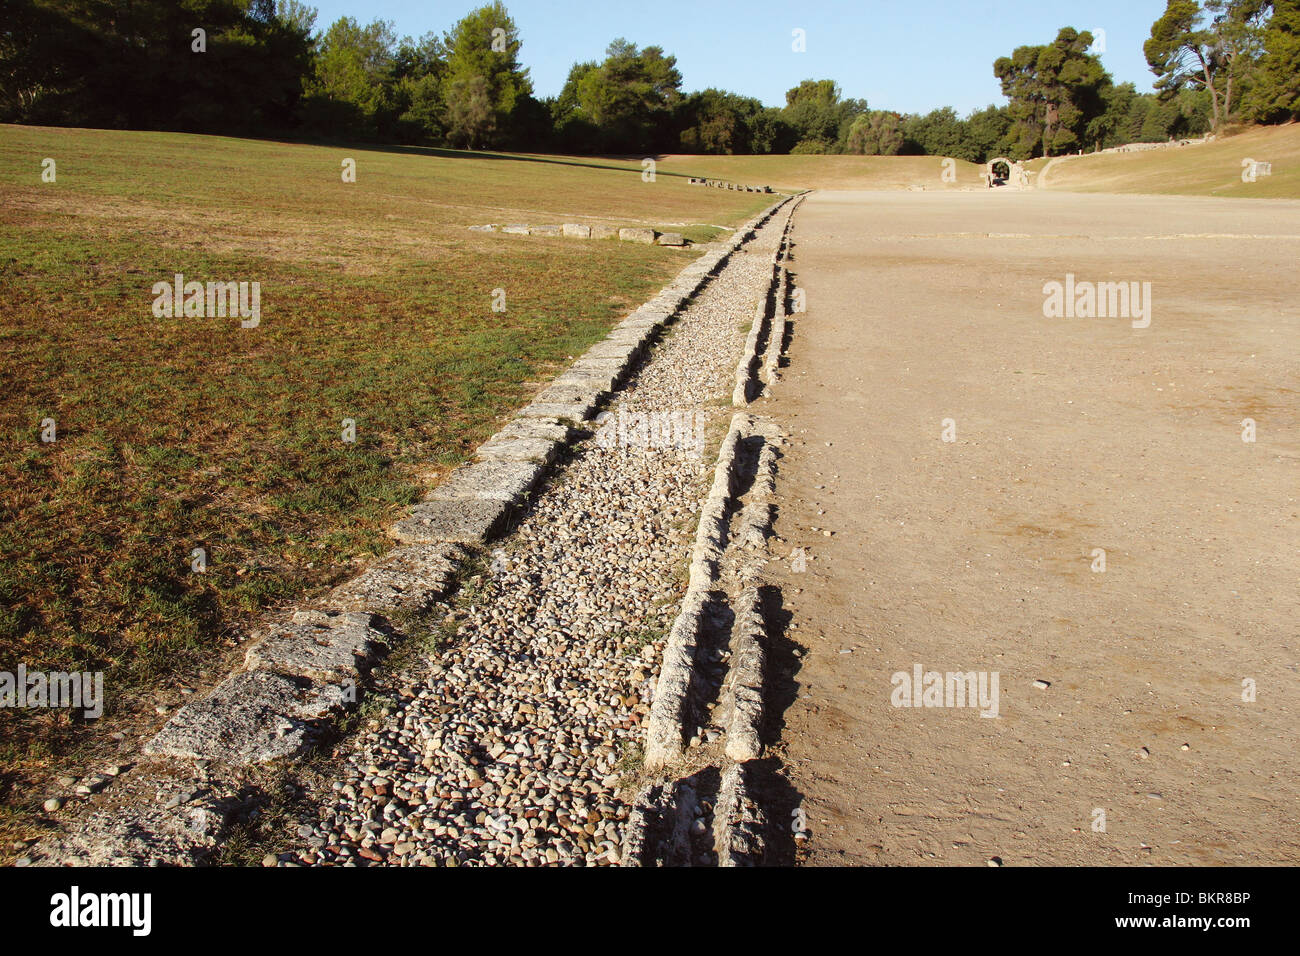 Sanctuary of Olympia. Panorama of the ancient Olympic Stadium. Detail of the water channel. Elis. Peloponesse. Greece. - Stock Image